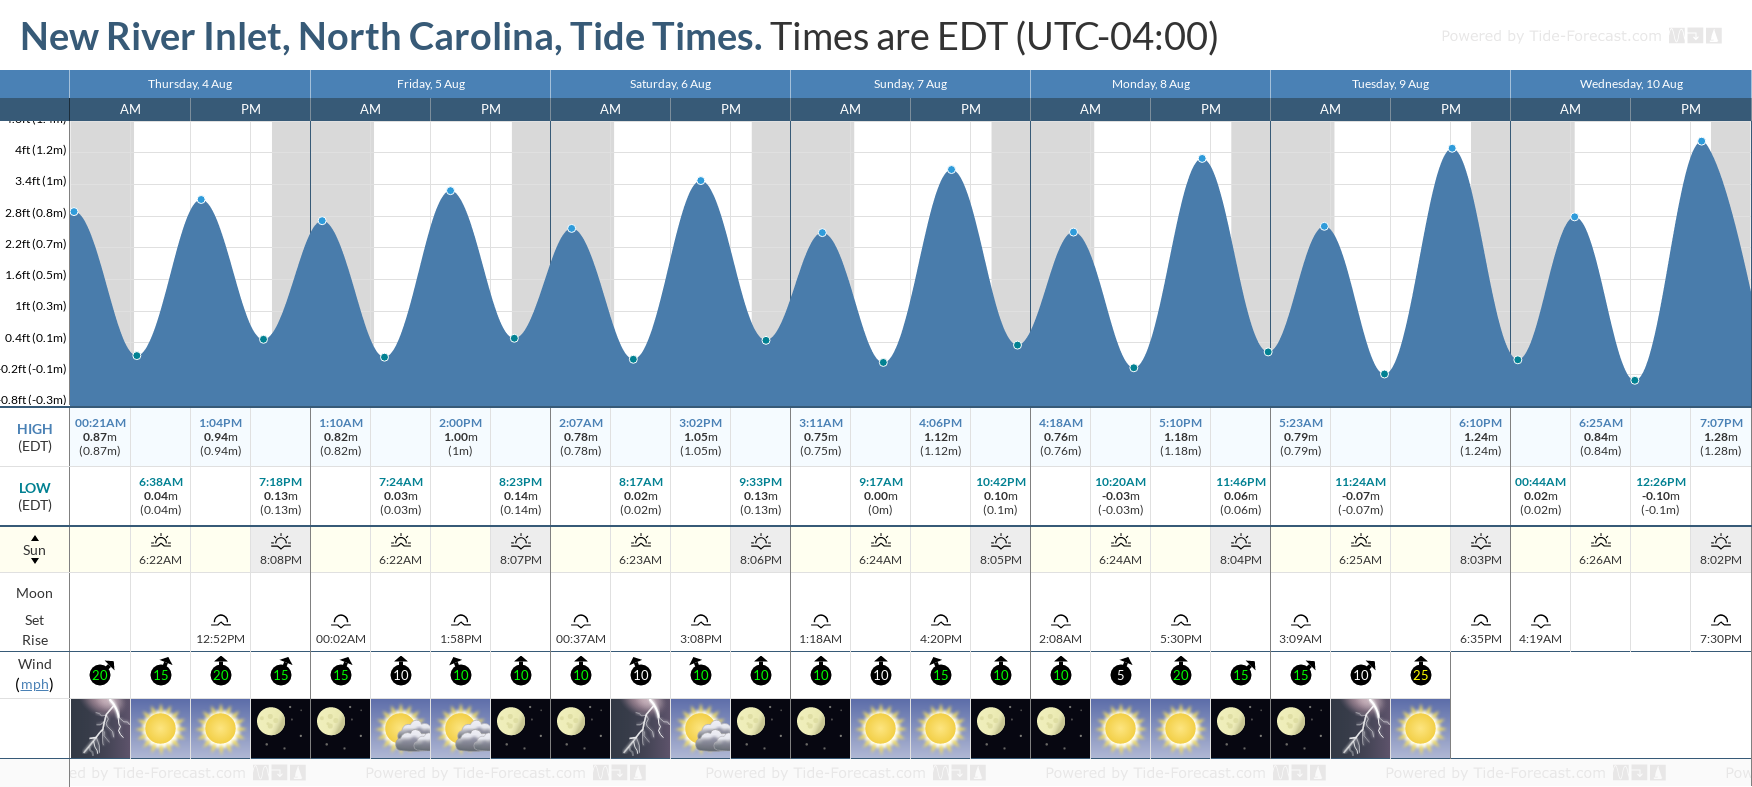 New River Inlet, North Carolina Tide Chart including high and low tide tide times for the next 7 days